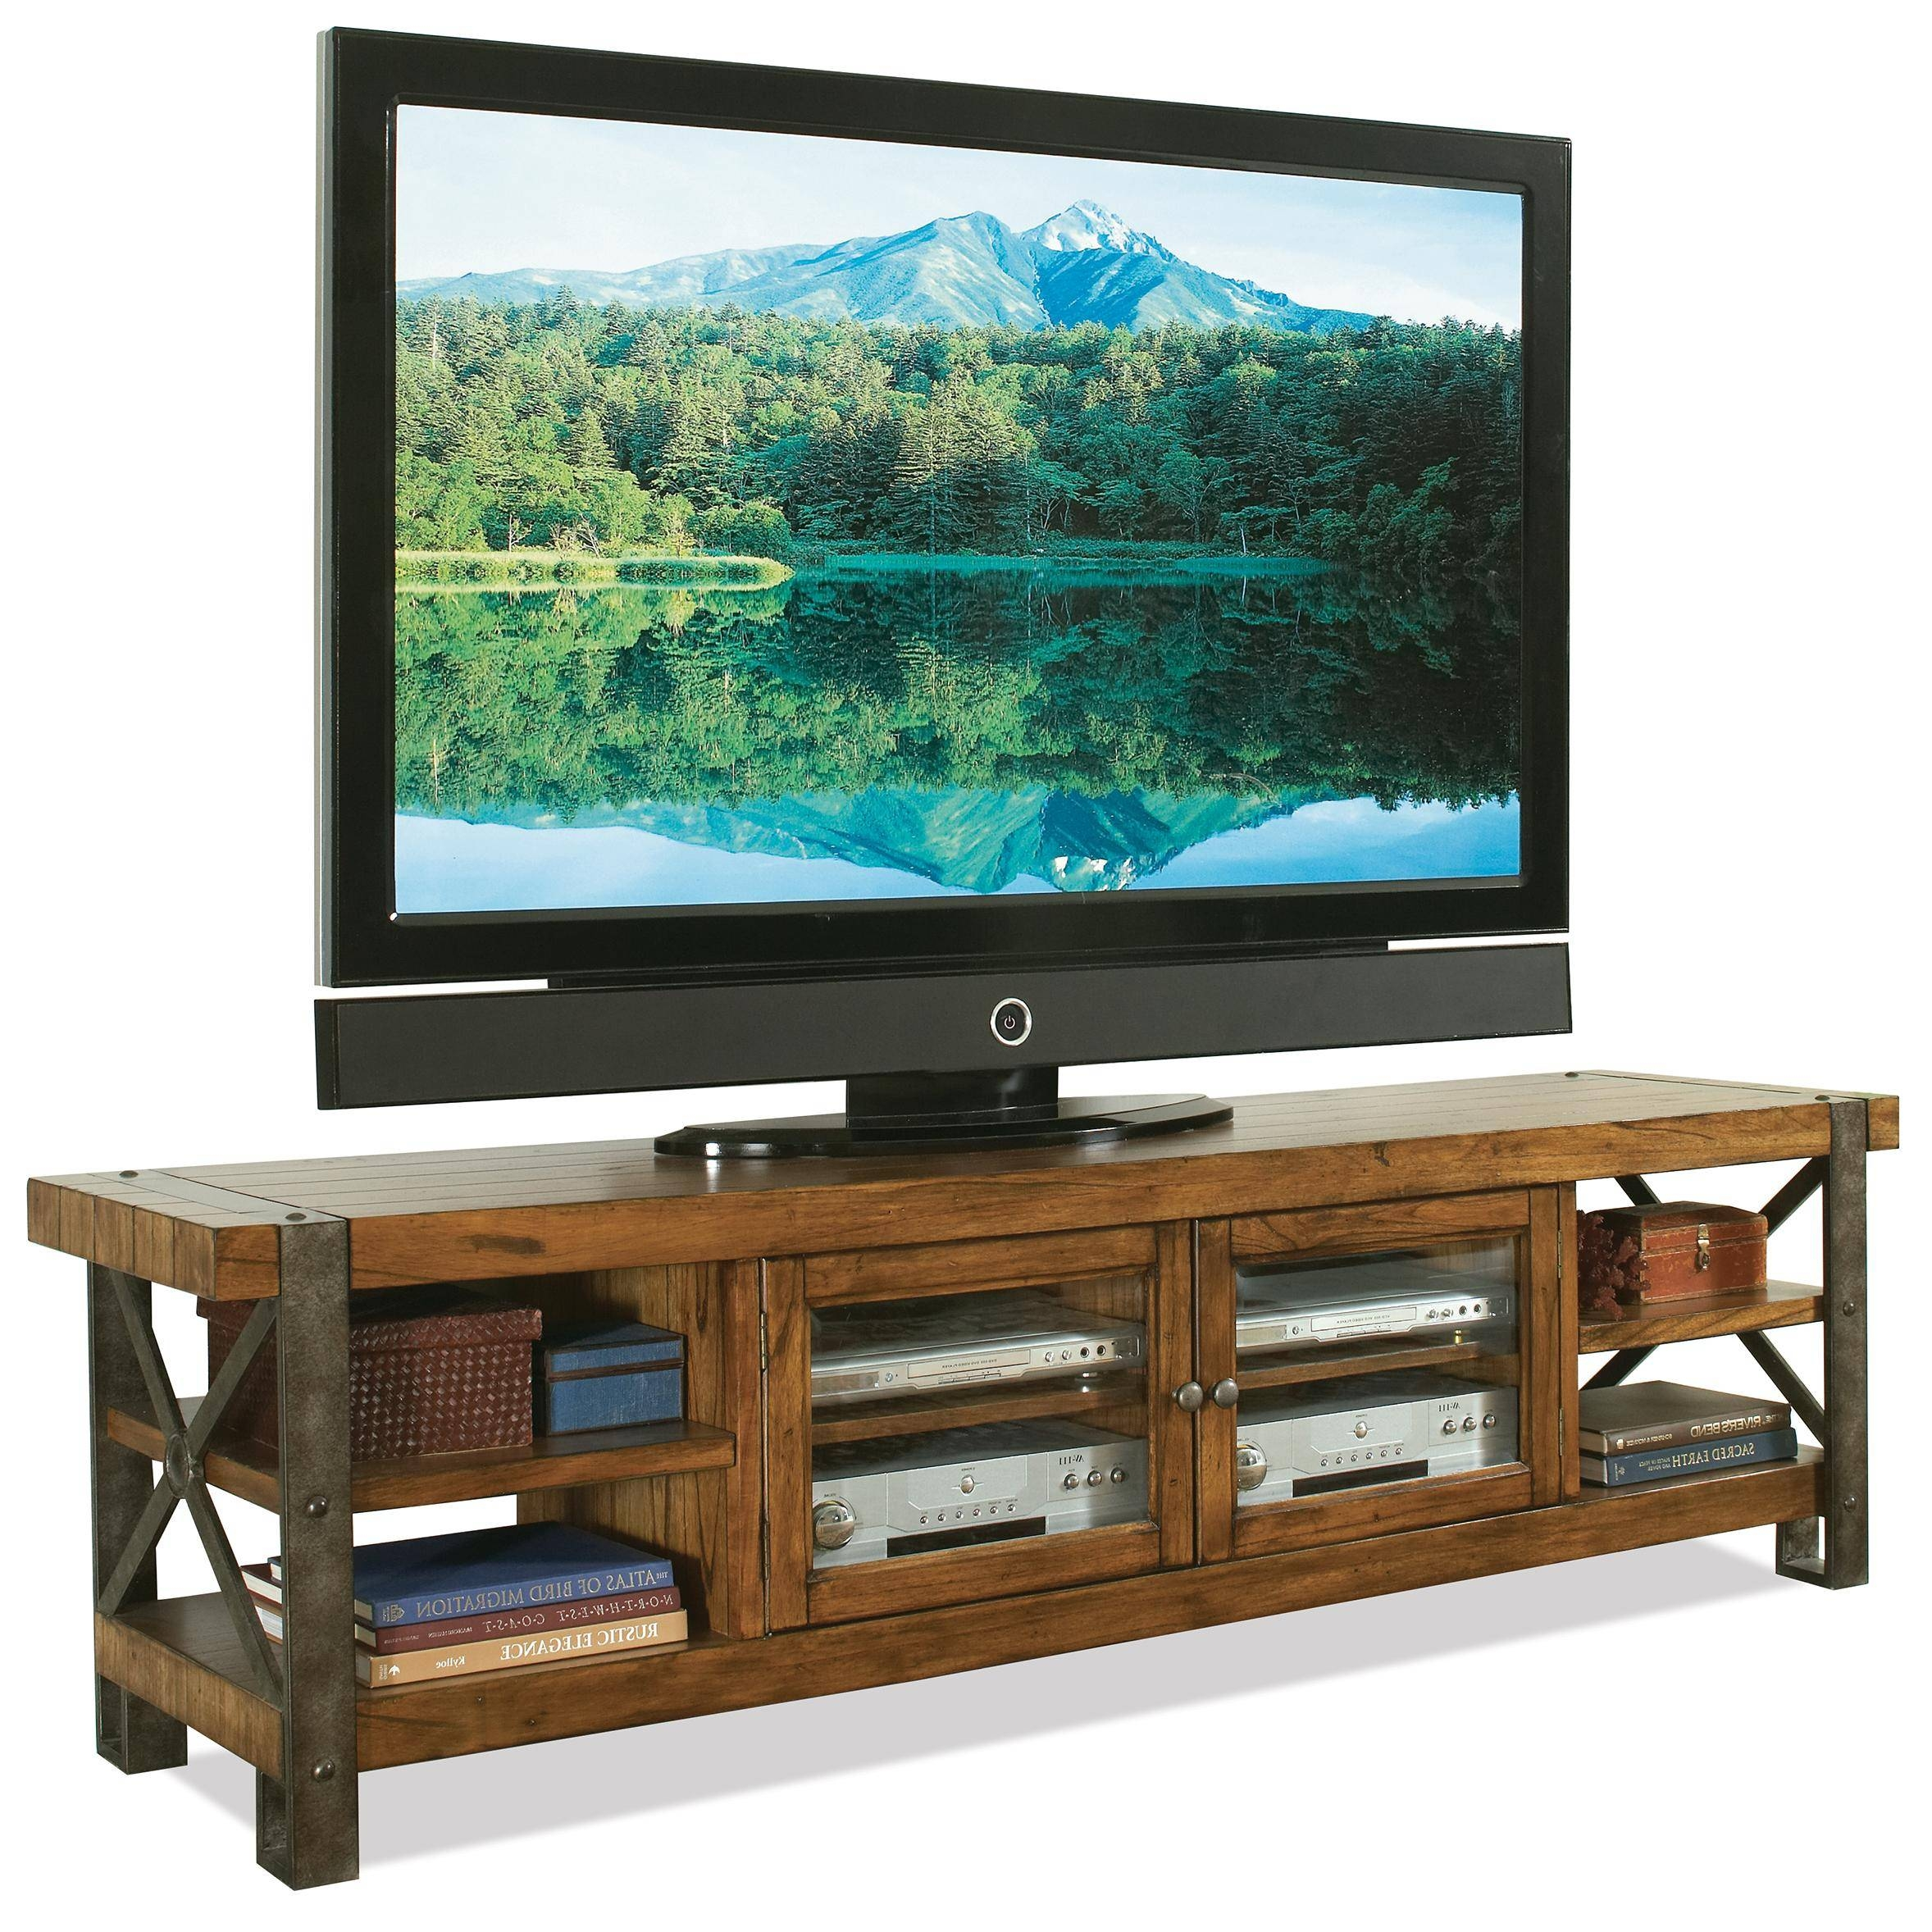 Rustic Tv Stand Console Table With Bookshelf And Storage With Intended For Cheap Rustic Tv Stands (View 11 of 15)